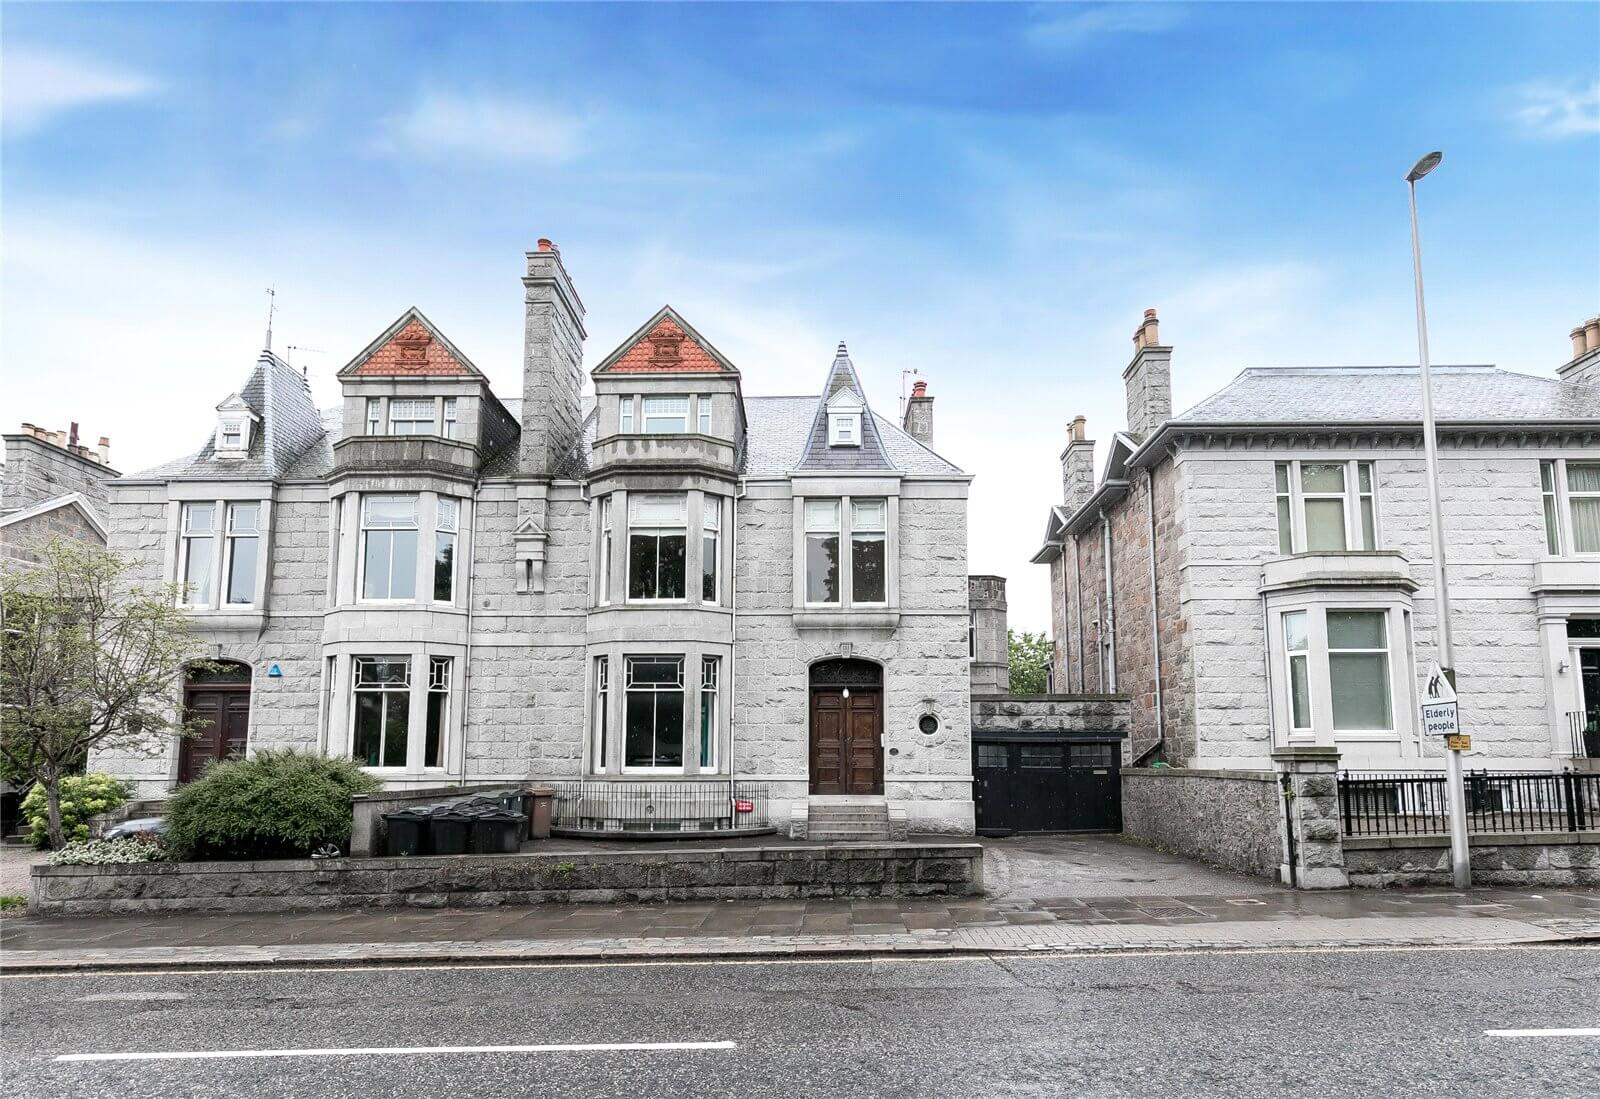 Four West End pads priced under £180,000